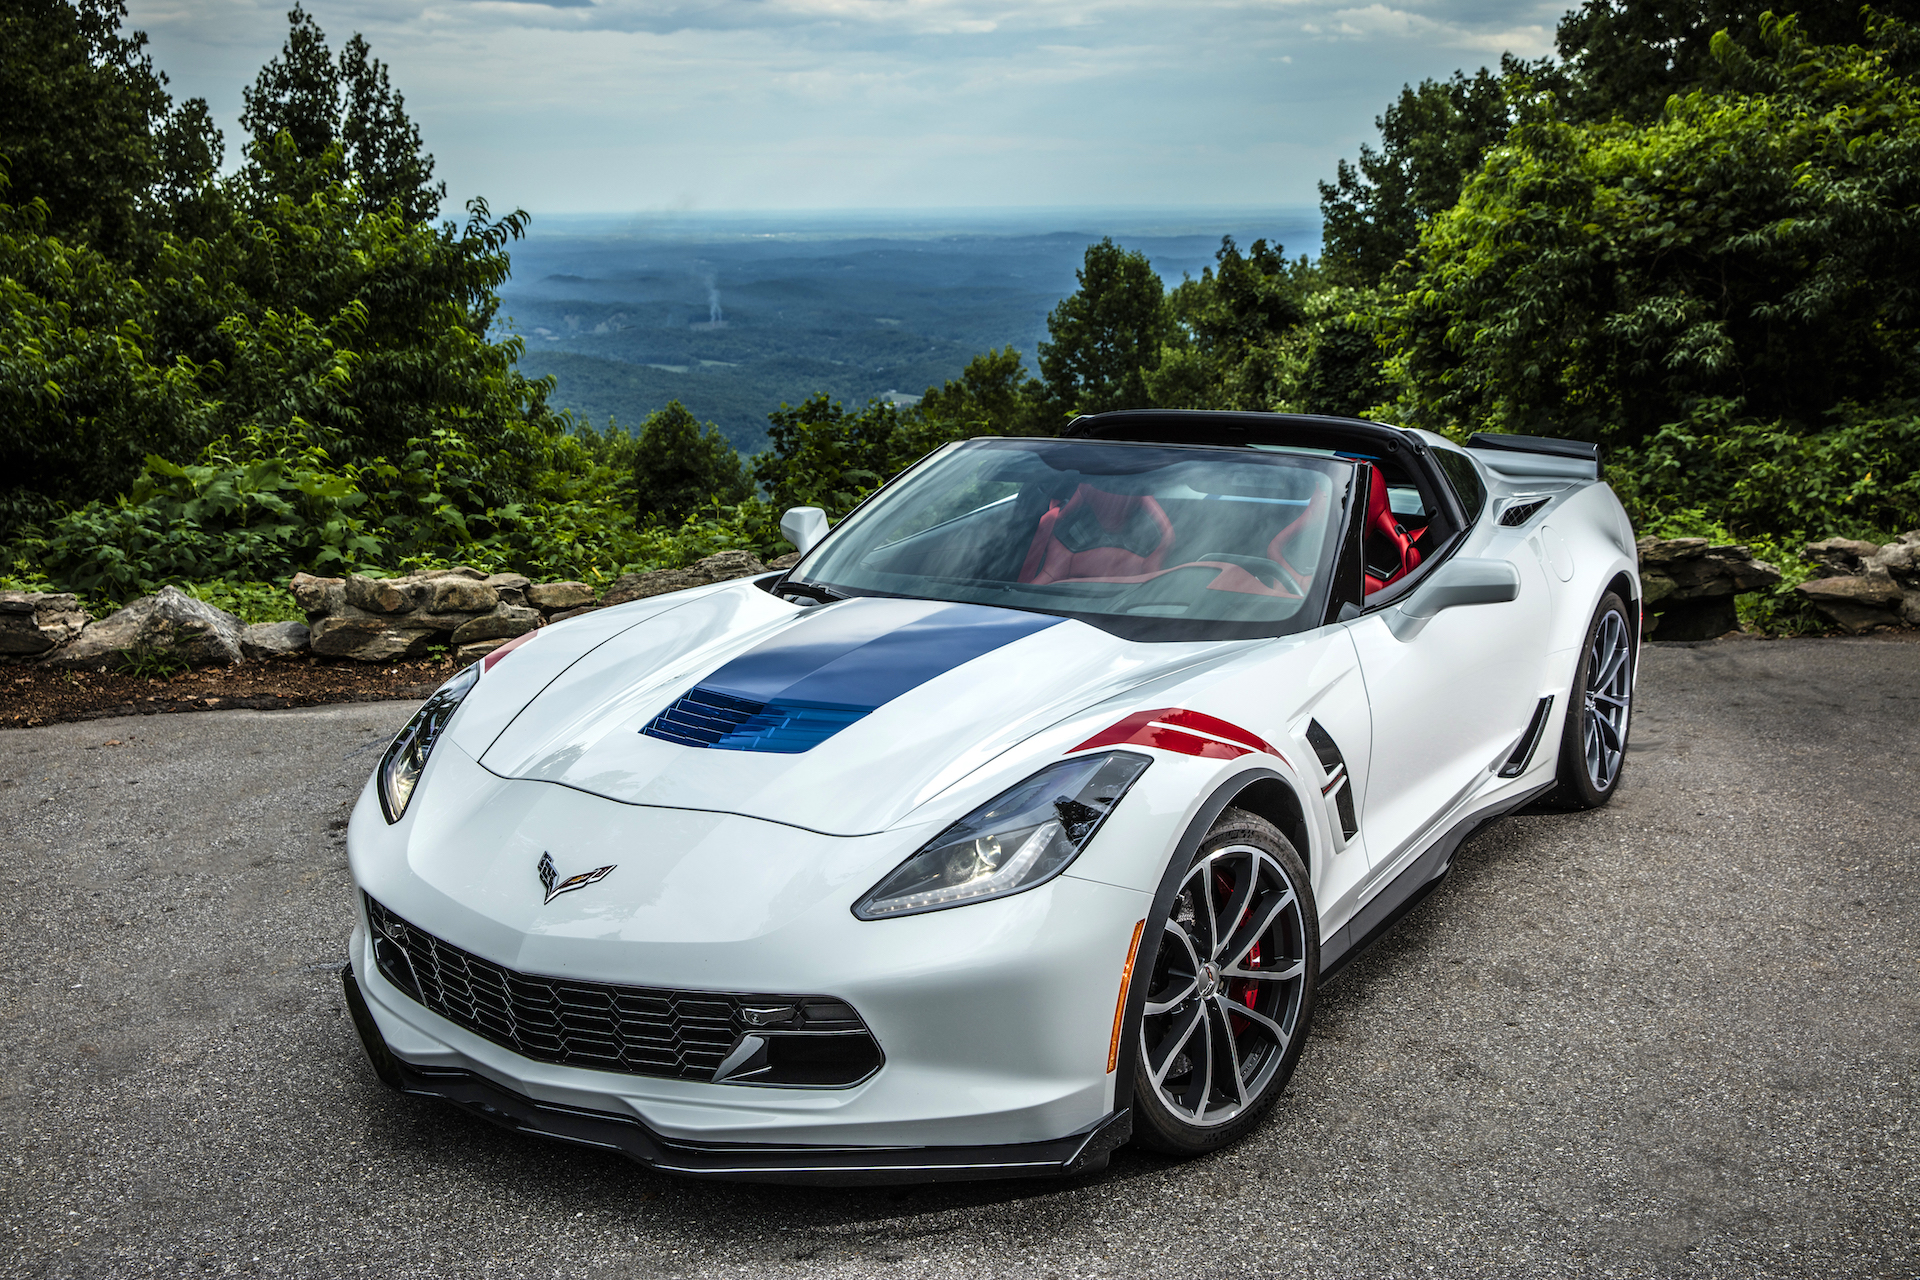 Corvette Stingray Convertible - Color | White